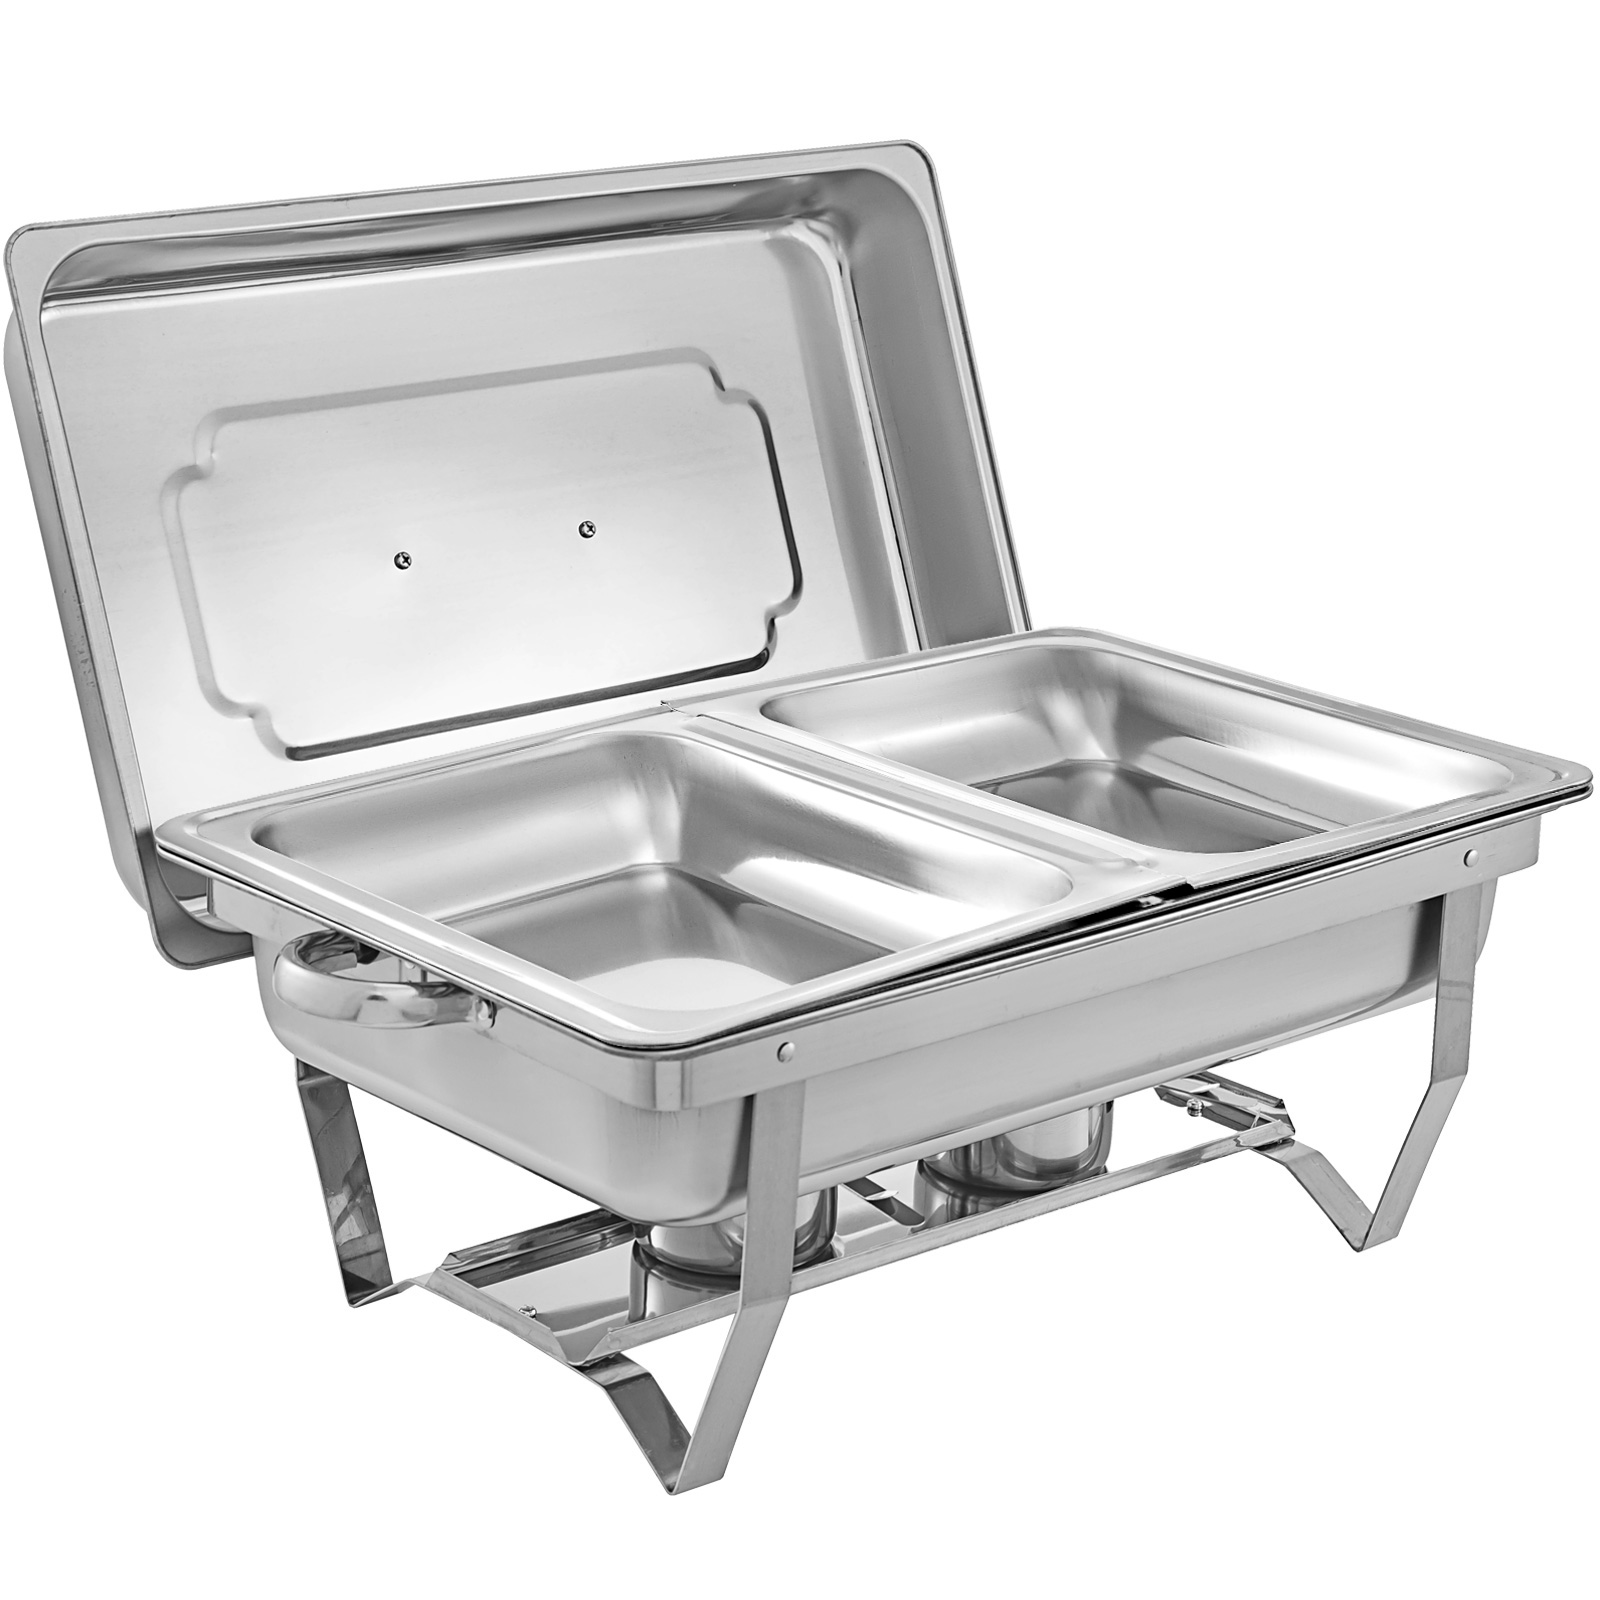 thumbnail 71 - Multi-Stainless-Steel-Chafing-Dish-Bain-Marie-Bow-Catering-Dish-Hotpot-Server